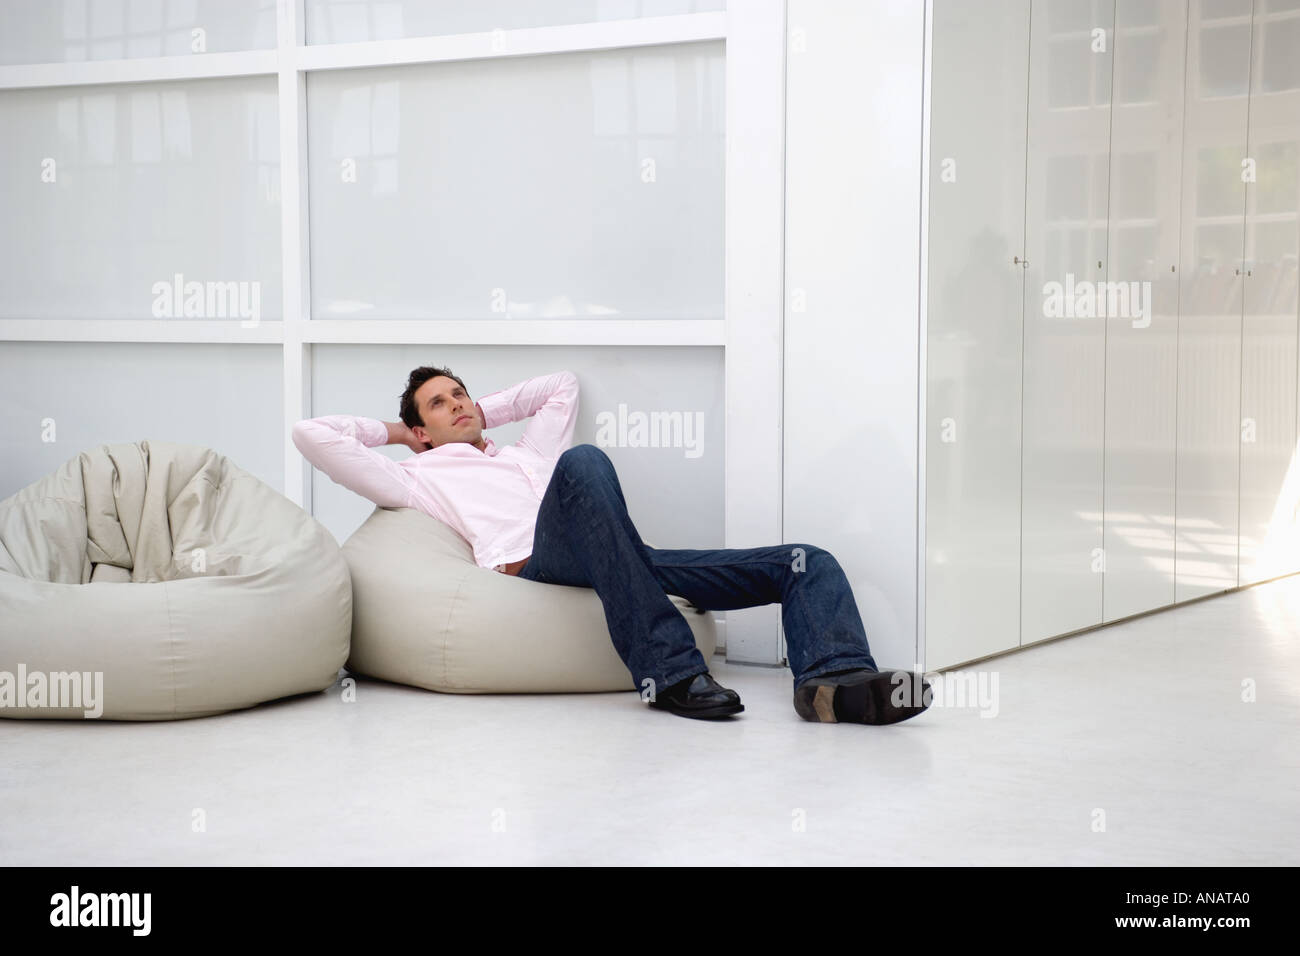 young businessman day dreaming on bean bag in office - Stock Image